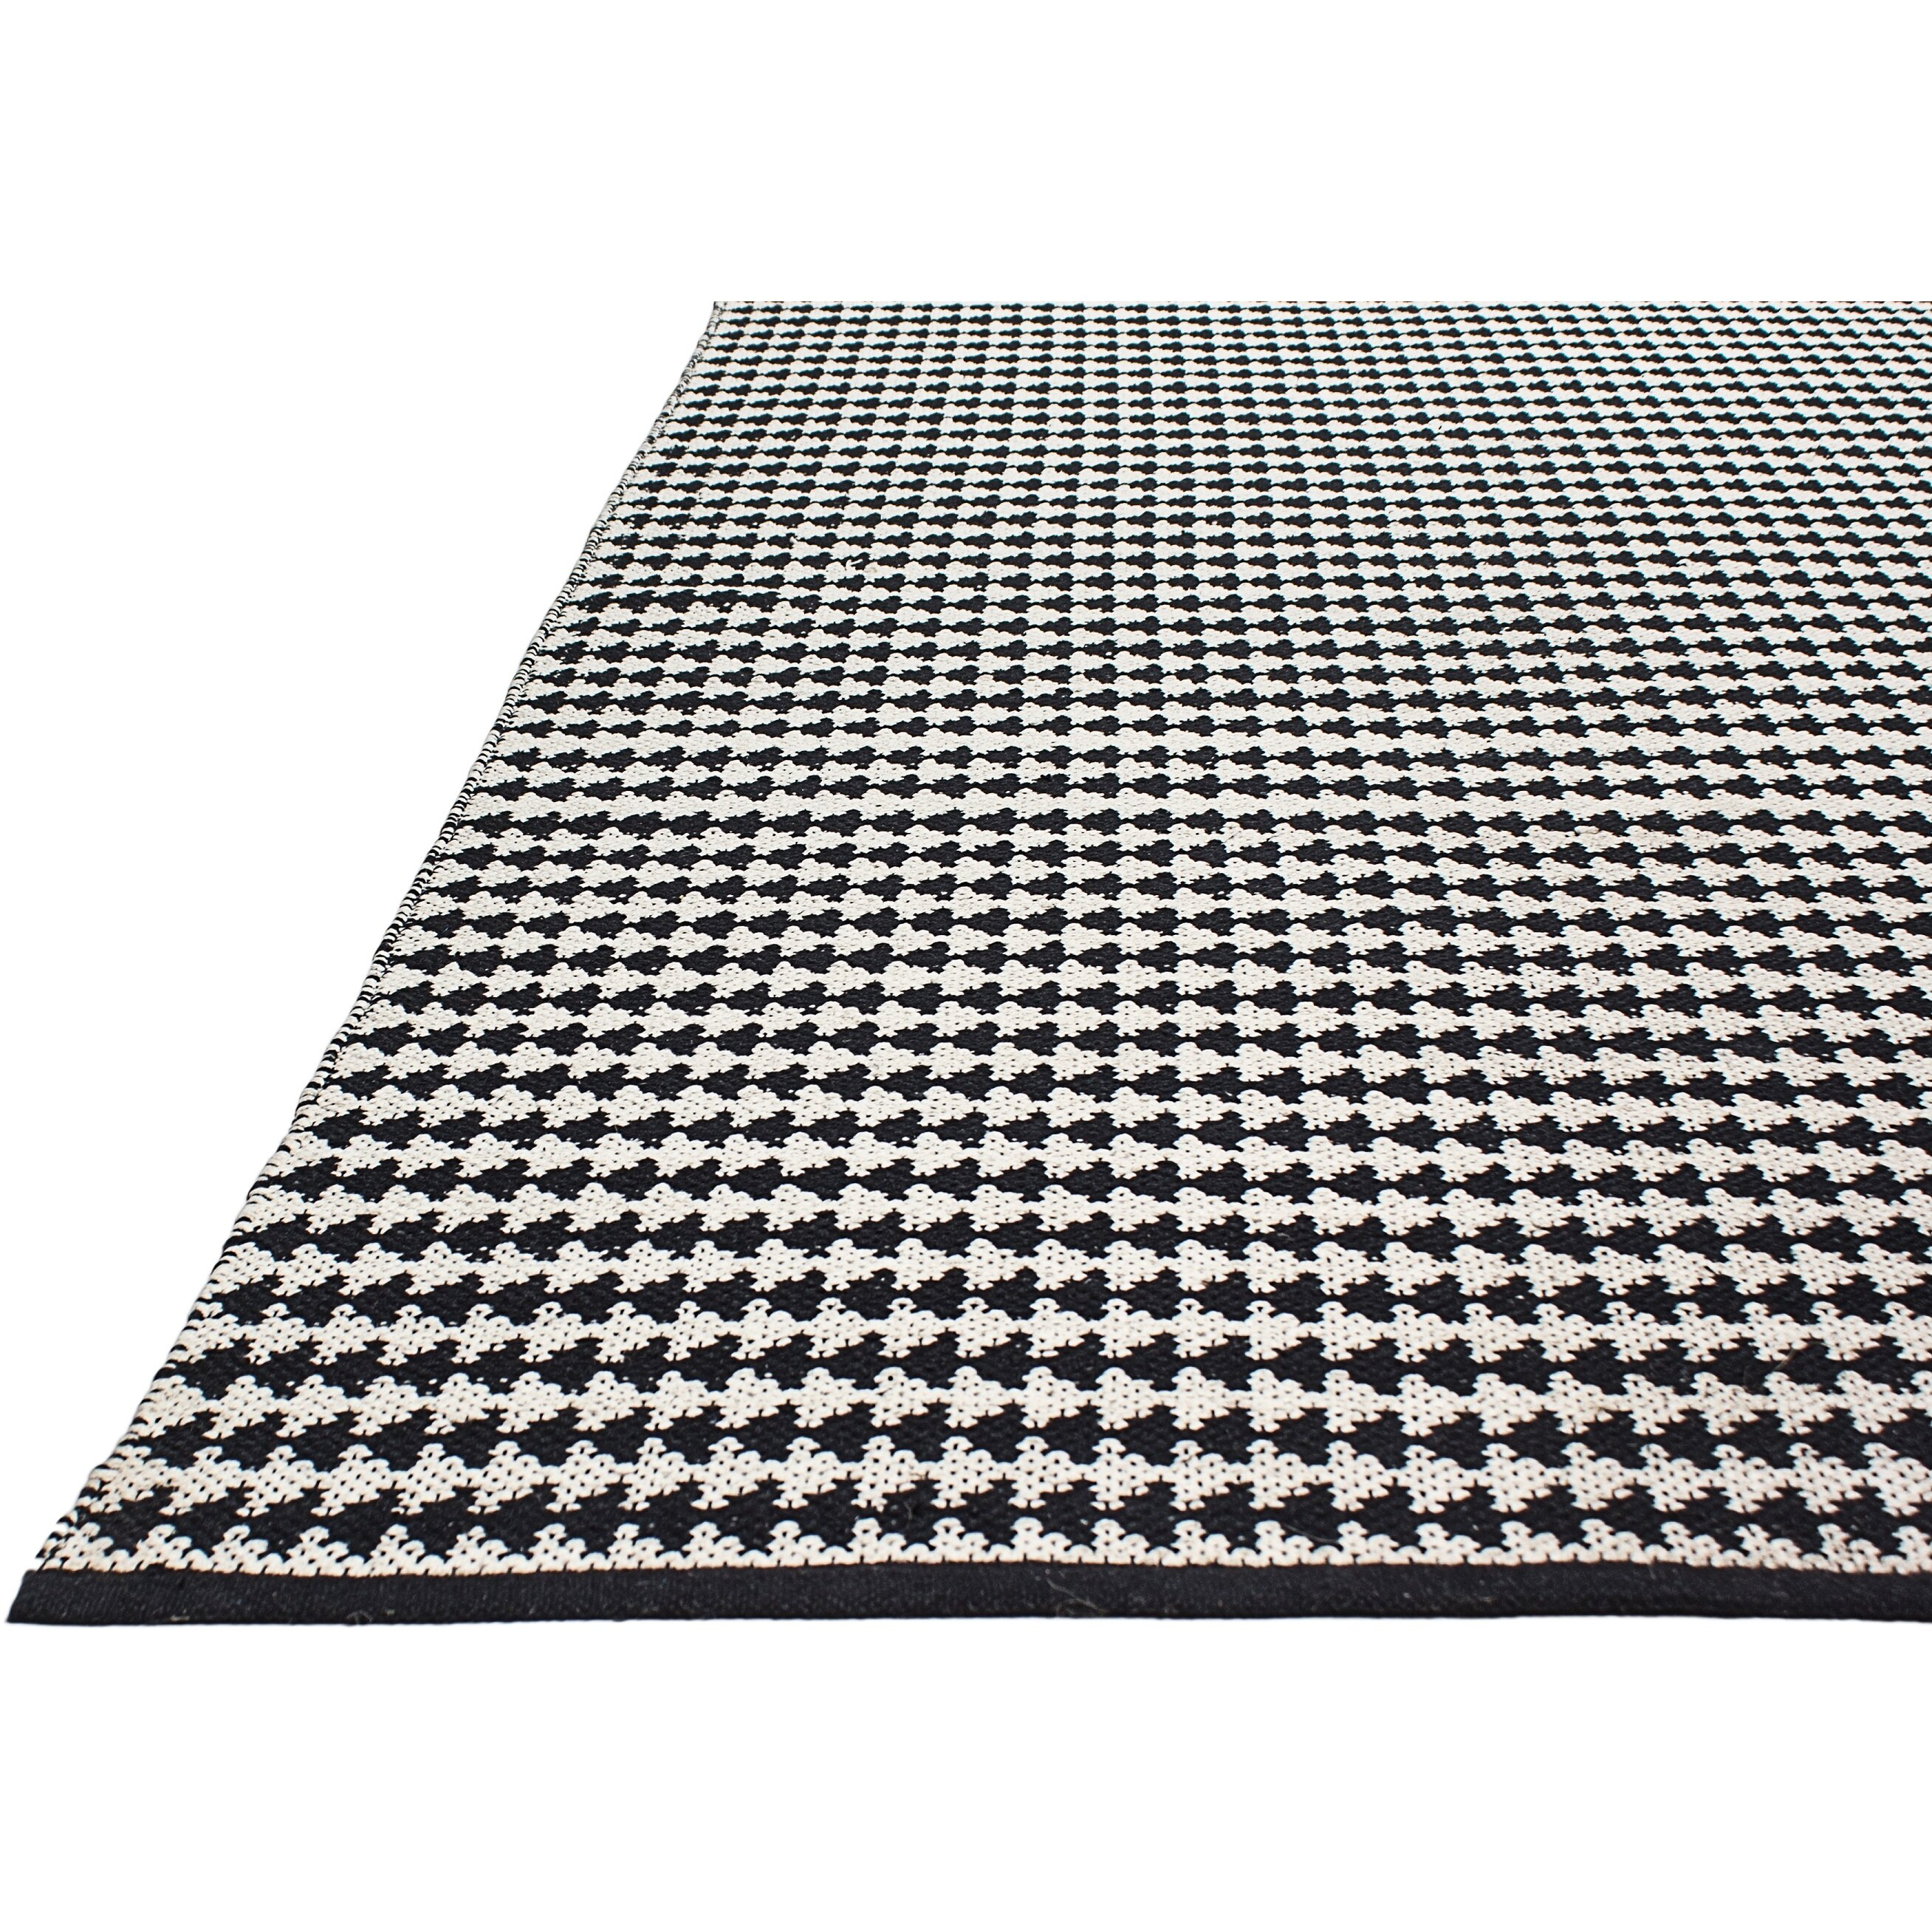 Fab Rugs Zen Hand-Woven Black/White Area Rug & Reviews